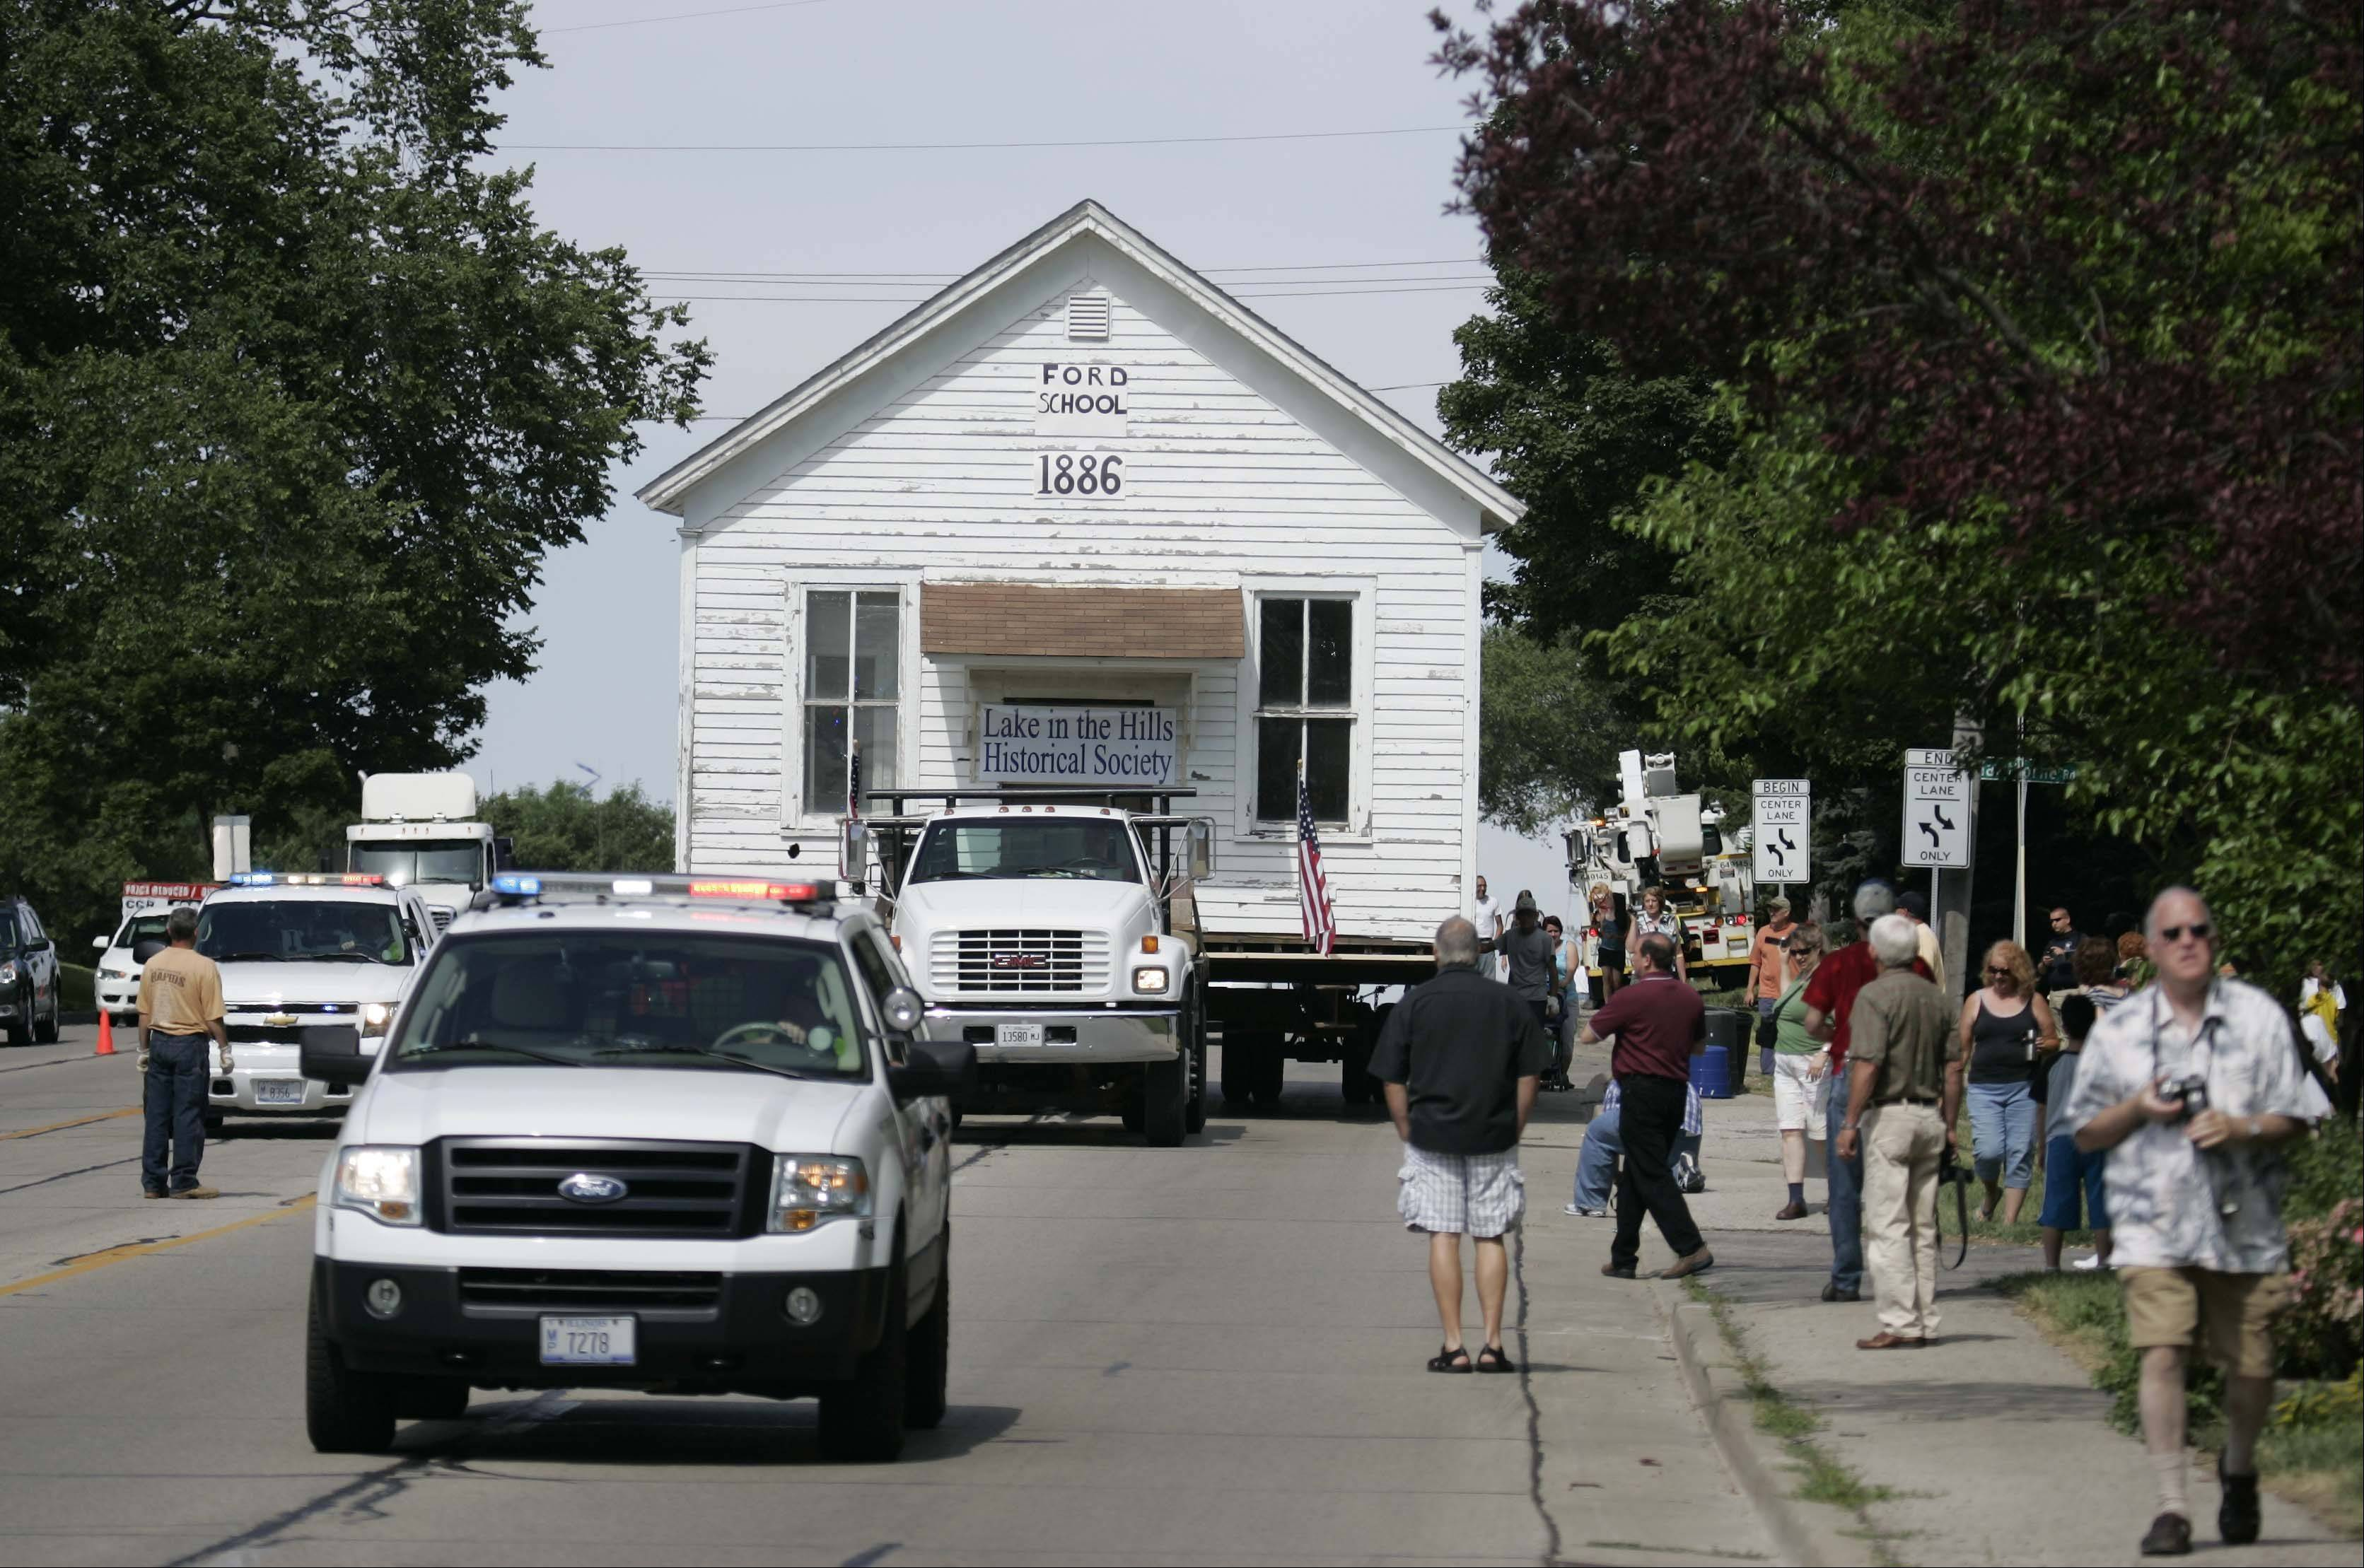 The Lake in the Hills Historical Society with a lot of help from Lyle Hyatt & Co. Inc., of Sandwich, moves the 1886 Ford schoolhouse back to its original location, where it will be turned into a museum.